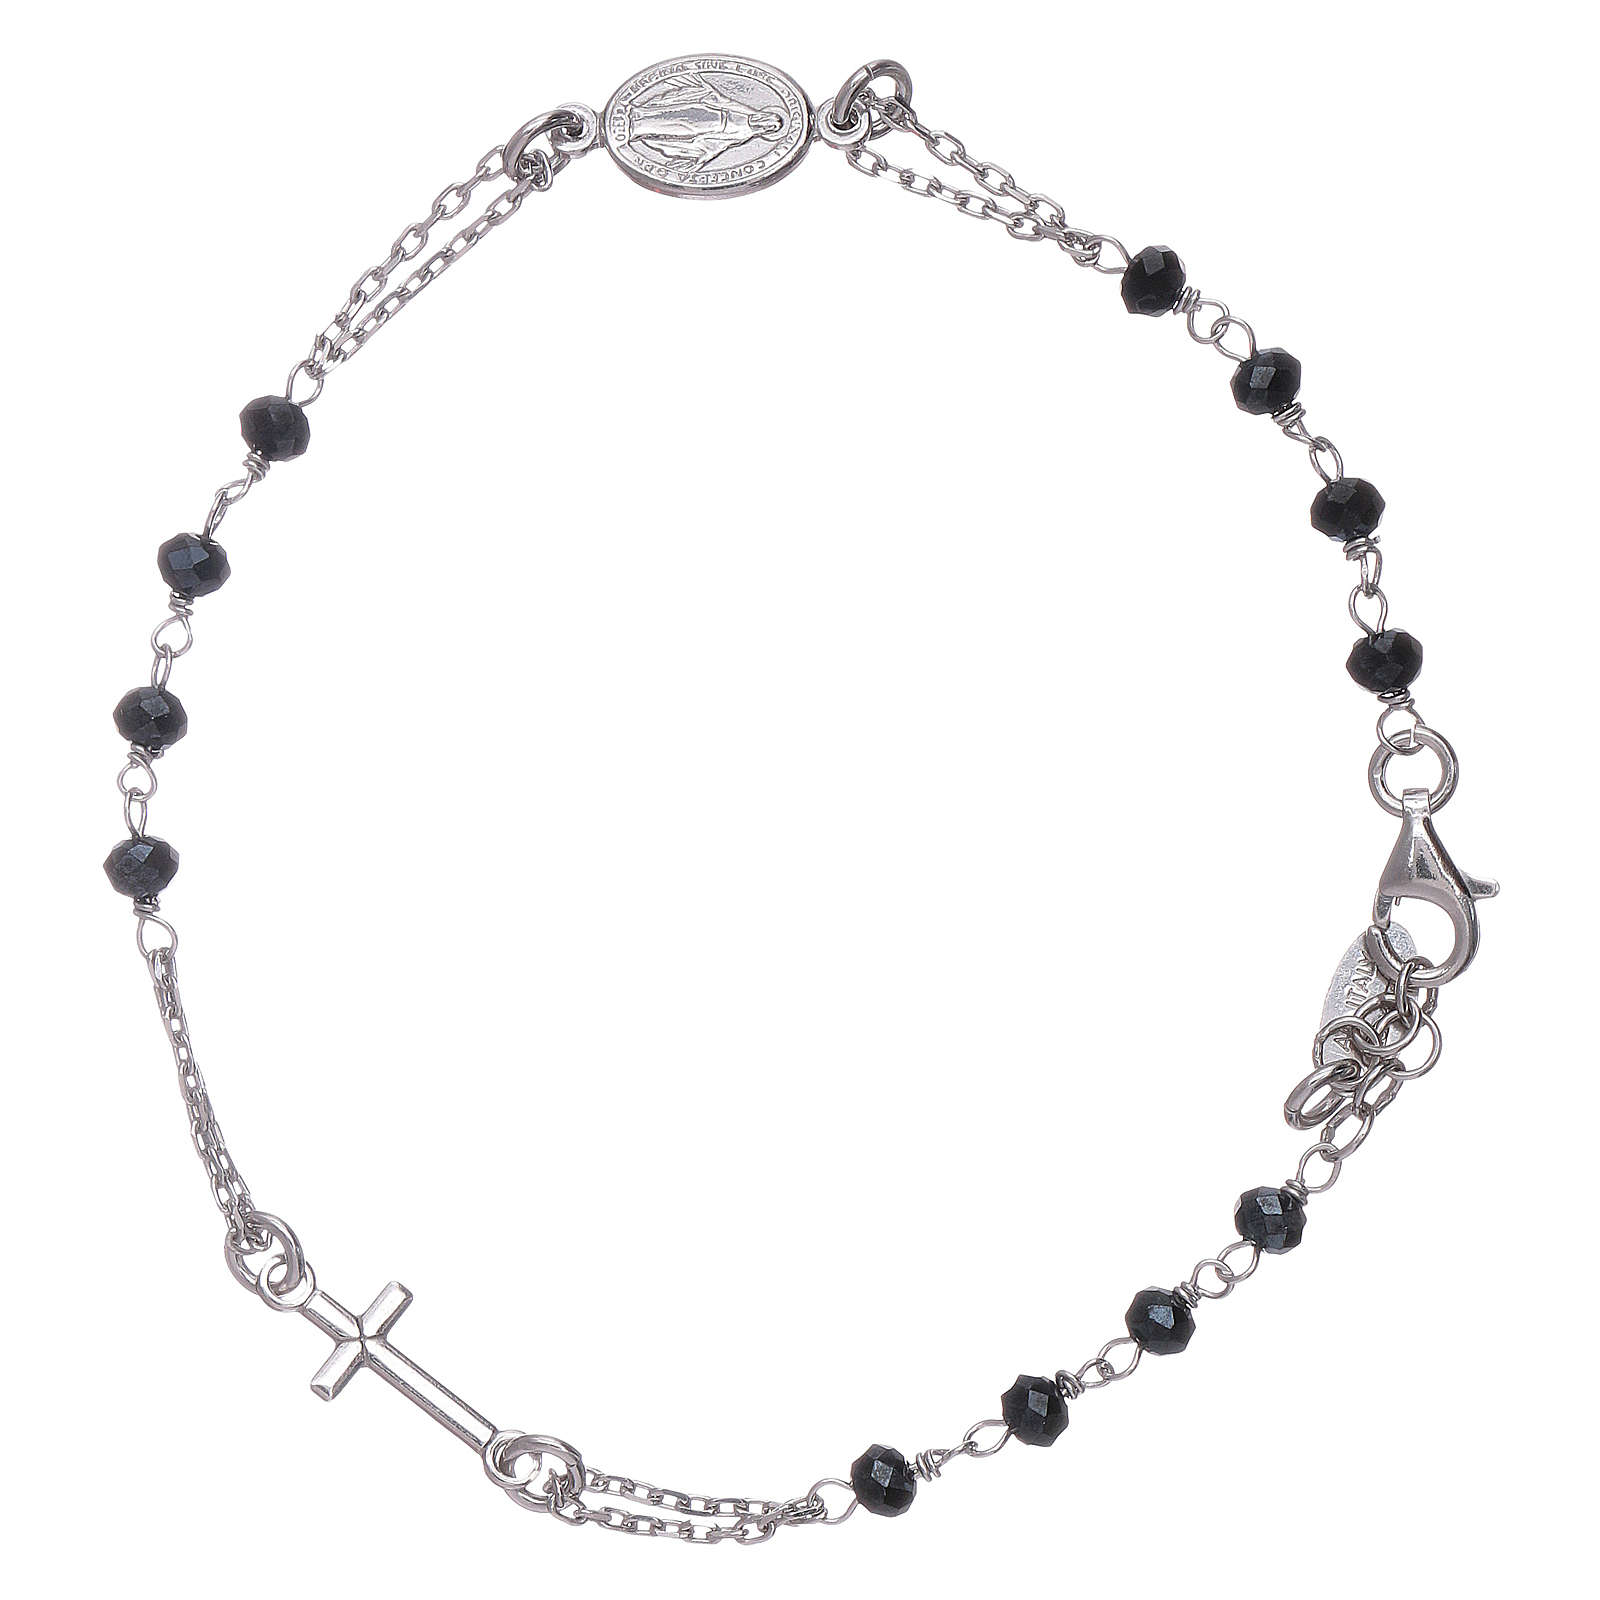 AMEN 925 sterling silver rosary bracelet with grey crystals 4